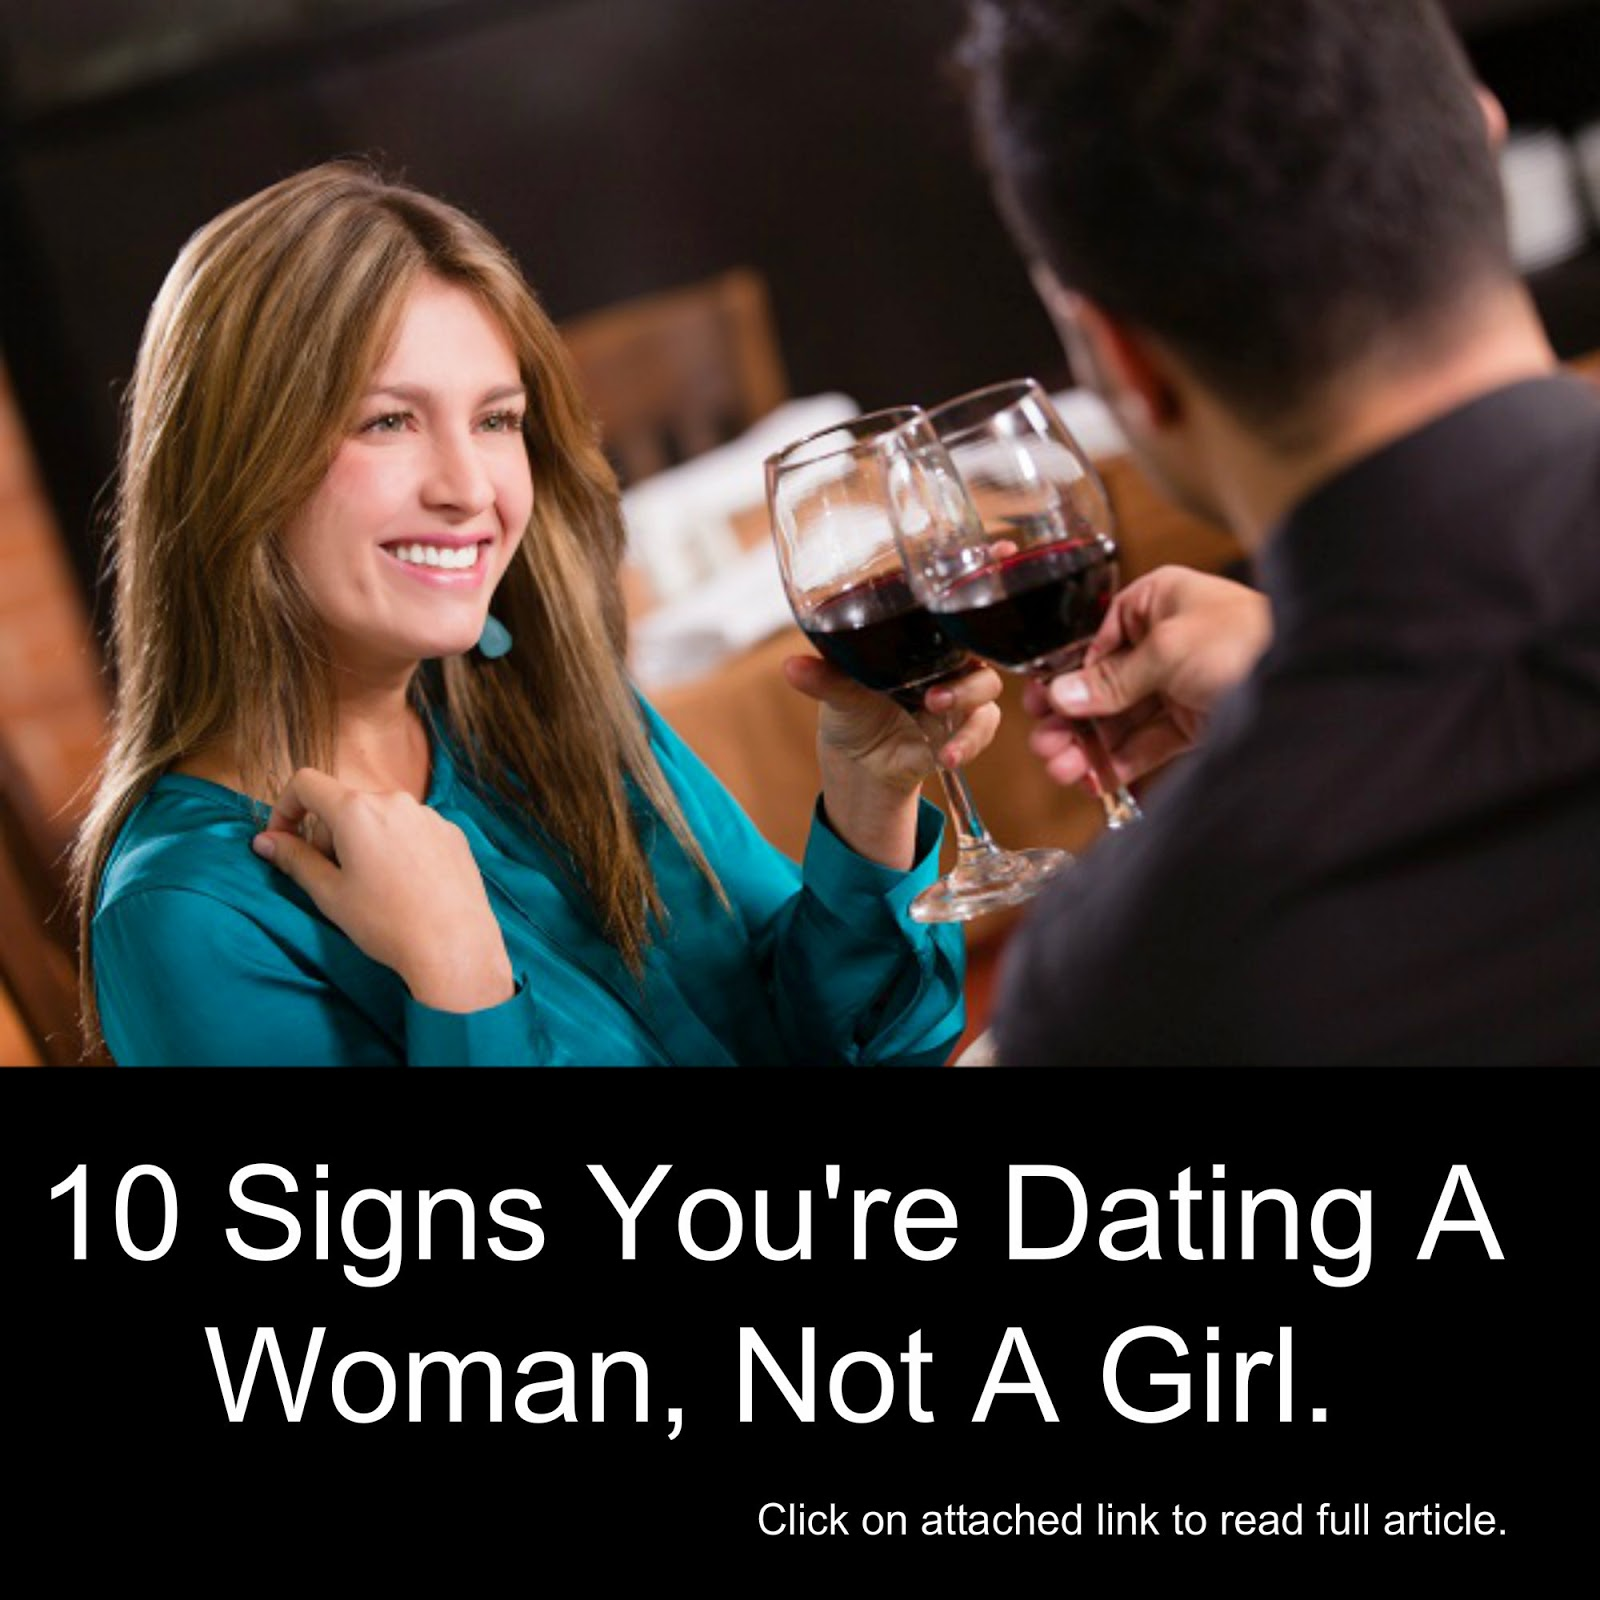 10 signs you're dating an immature girl